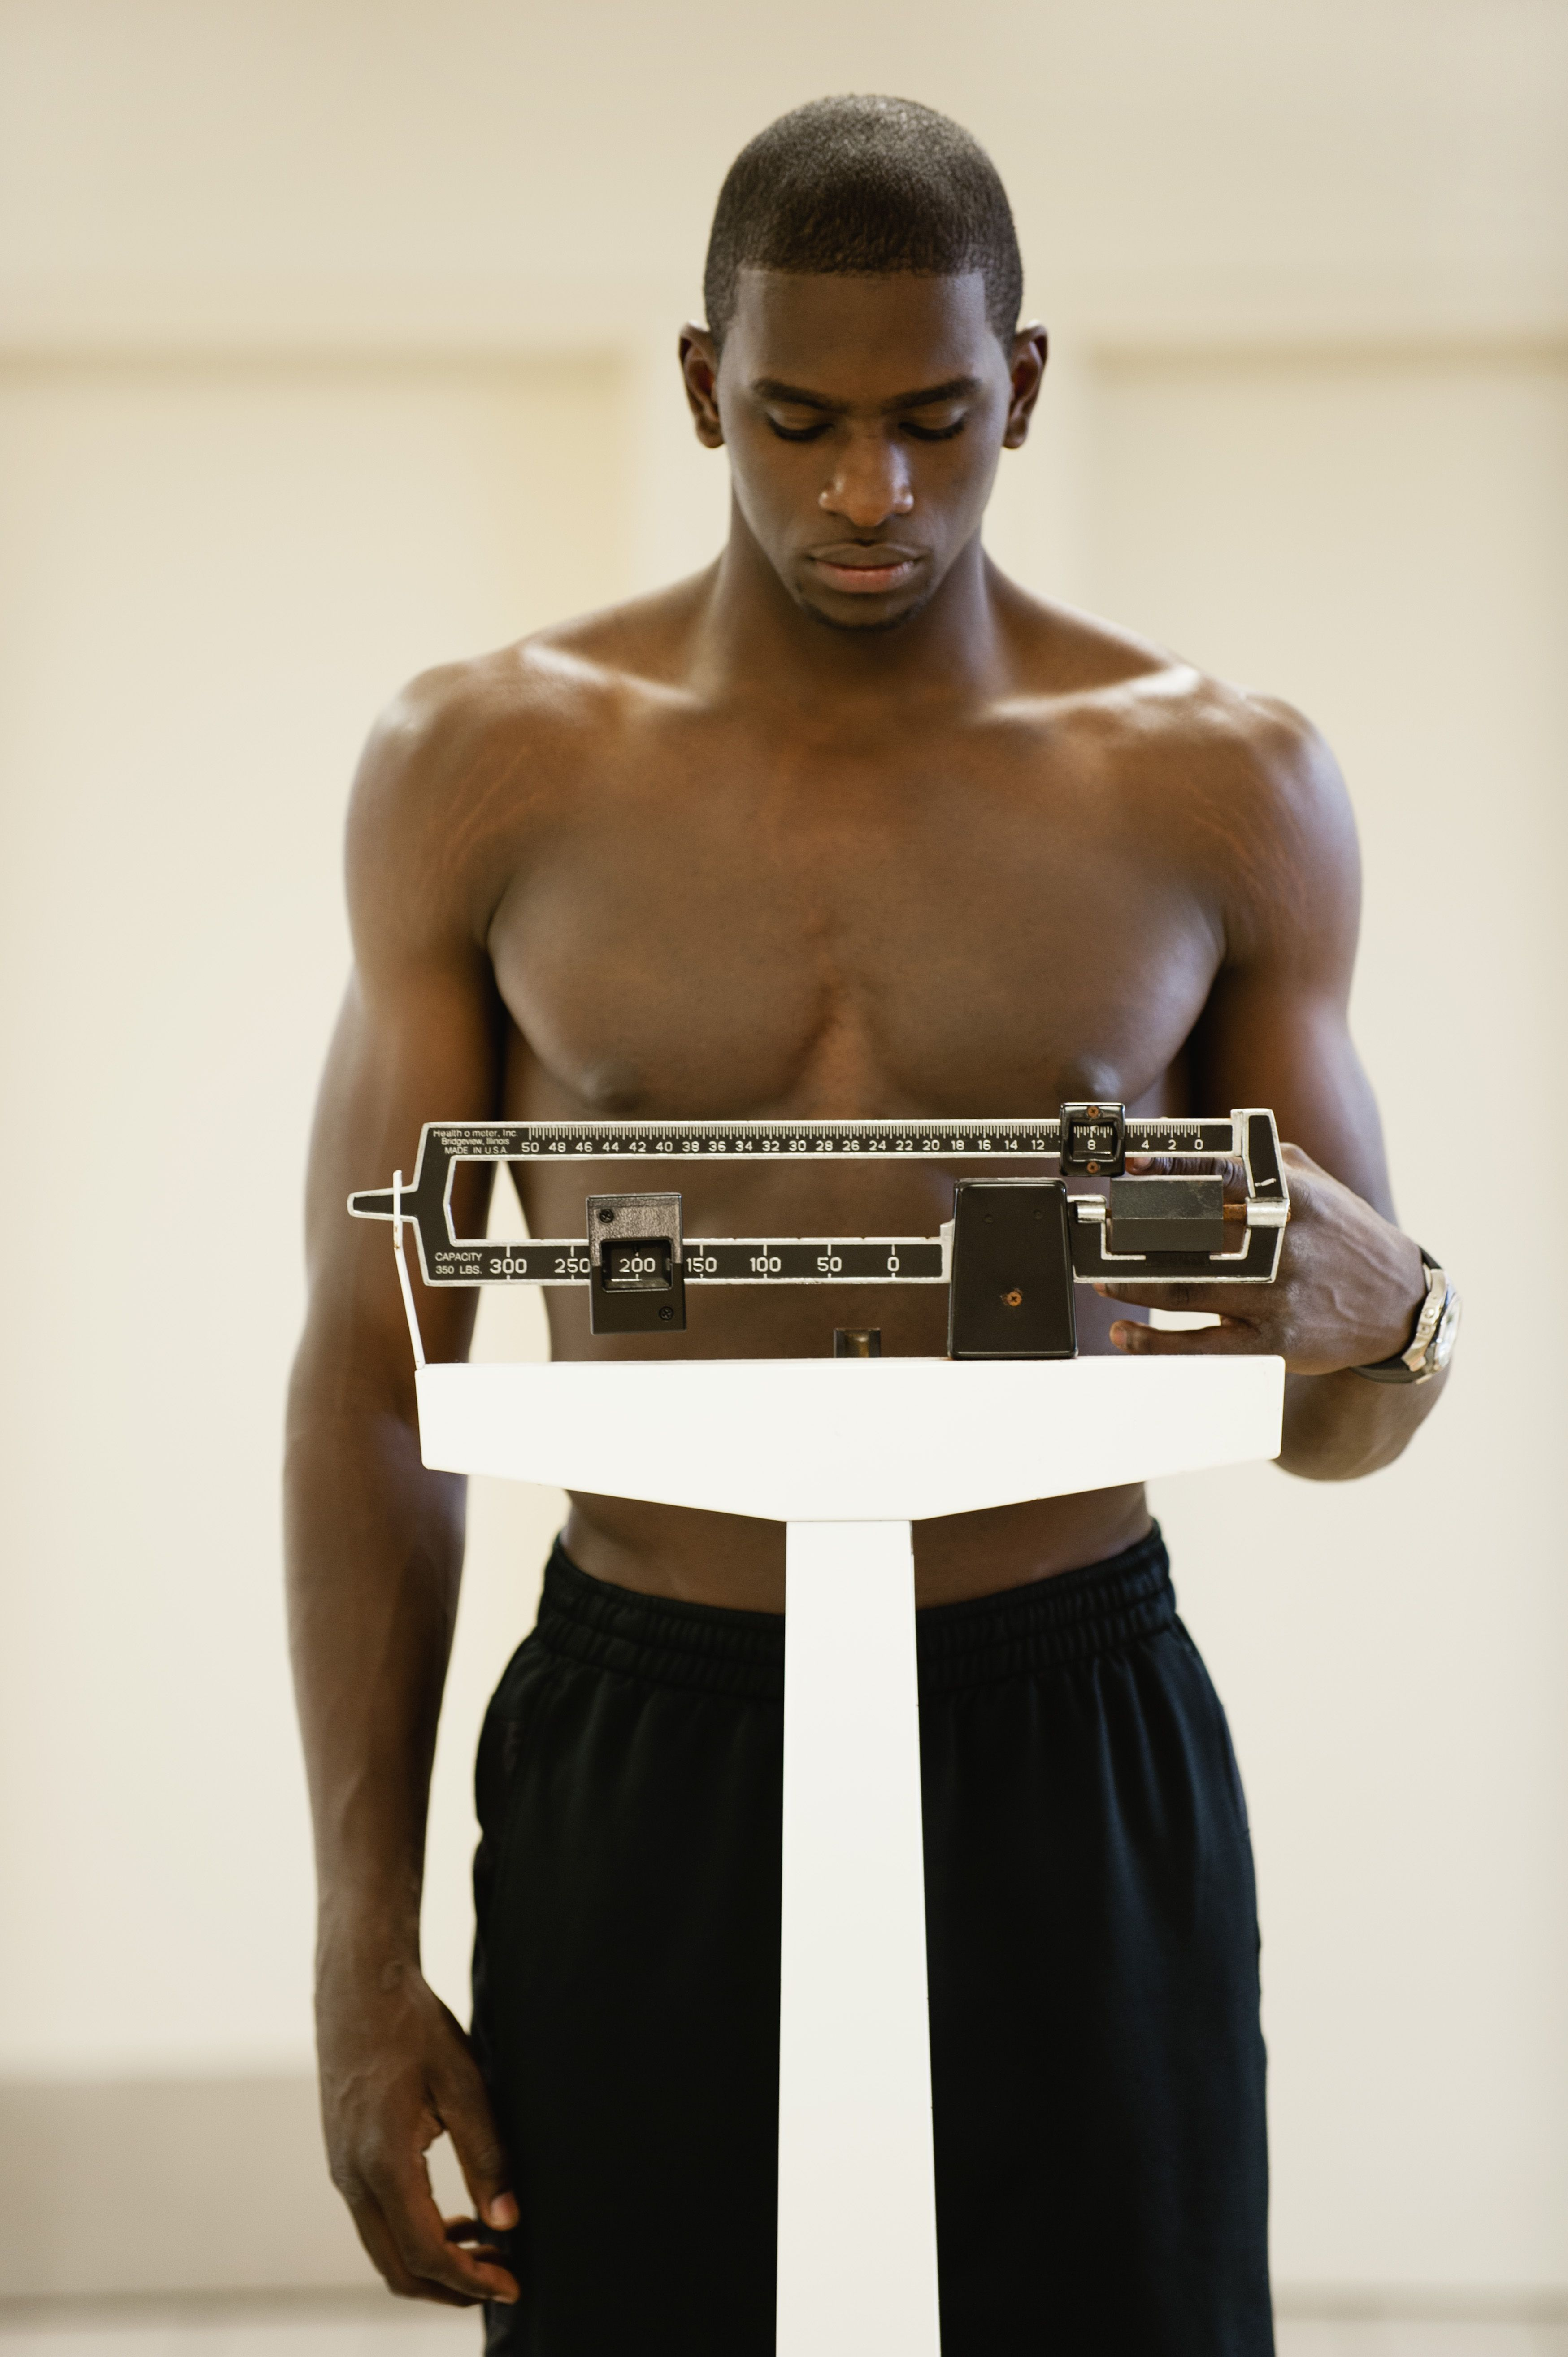 30 Weight Loss Tips For Men How Men Can Lose Weight